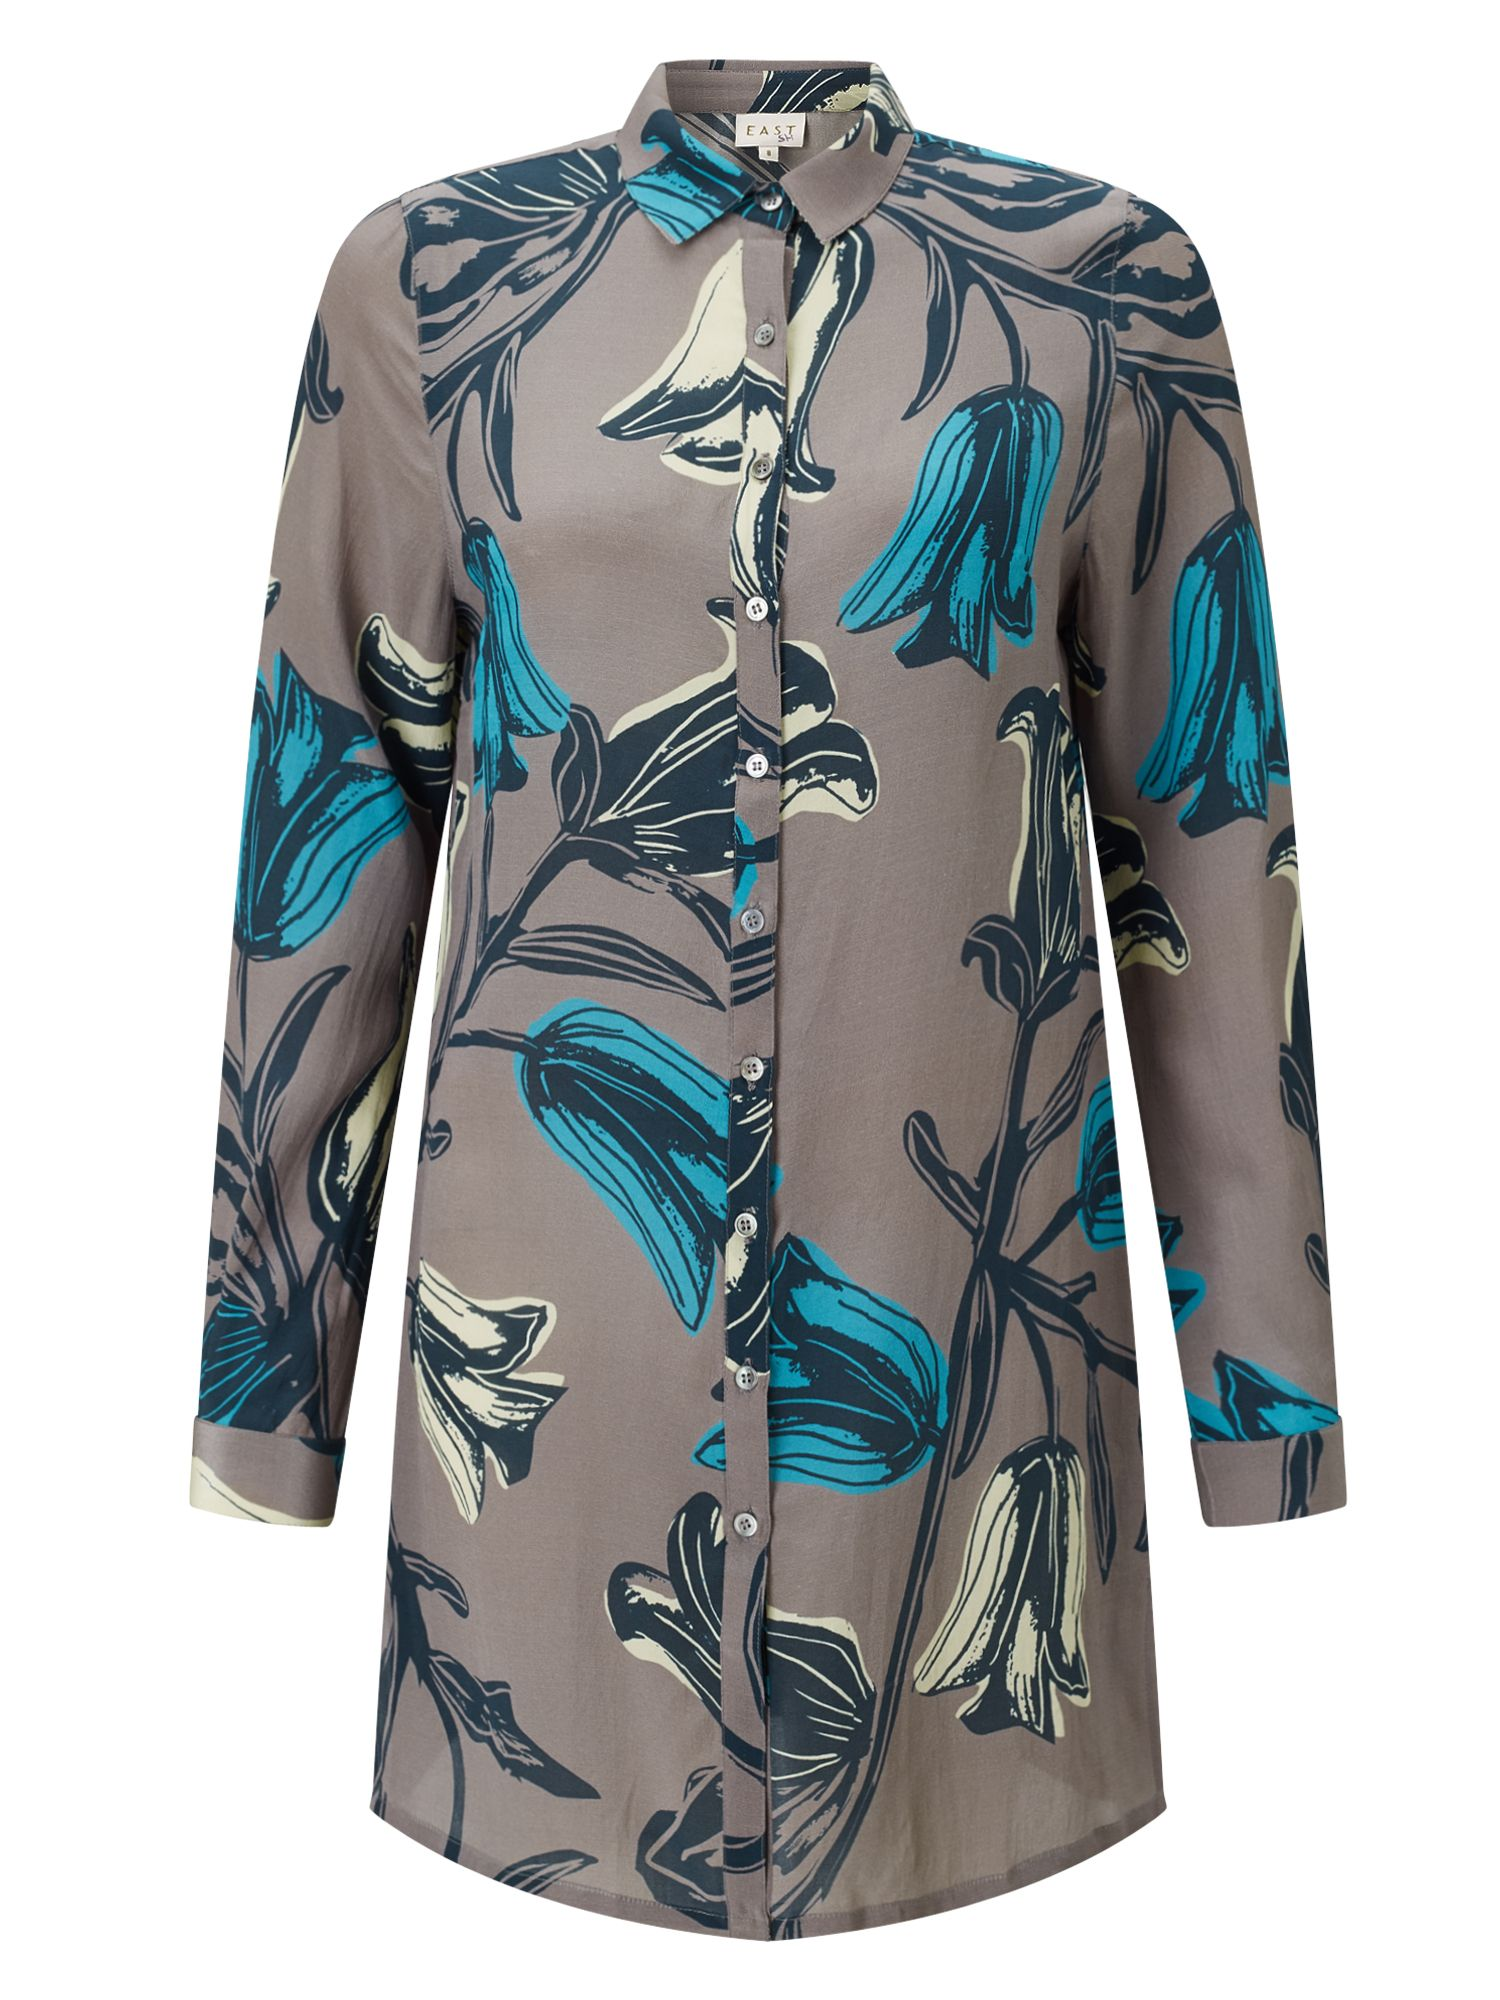 East Silk Tulip Print Oversize Shirt, Grey